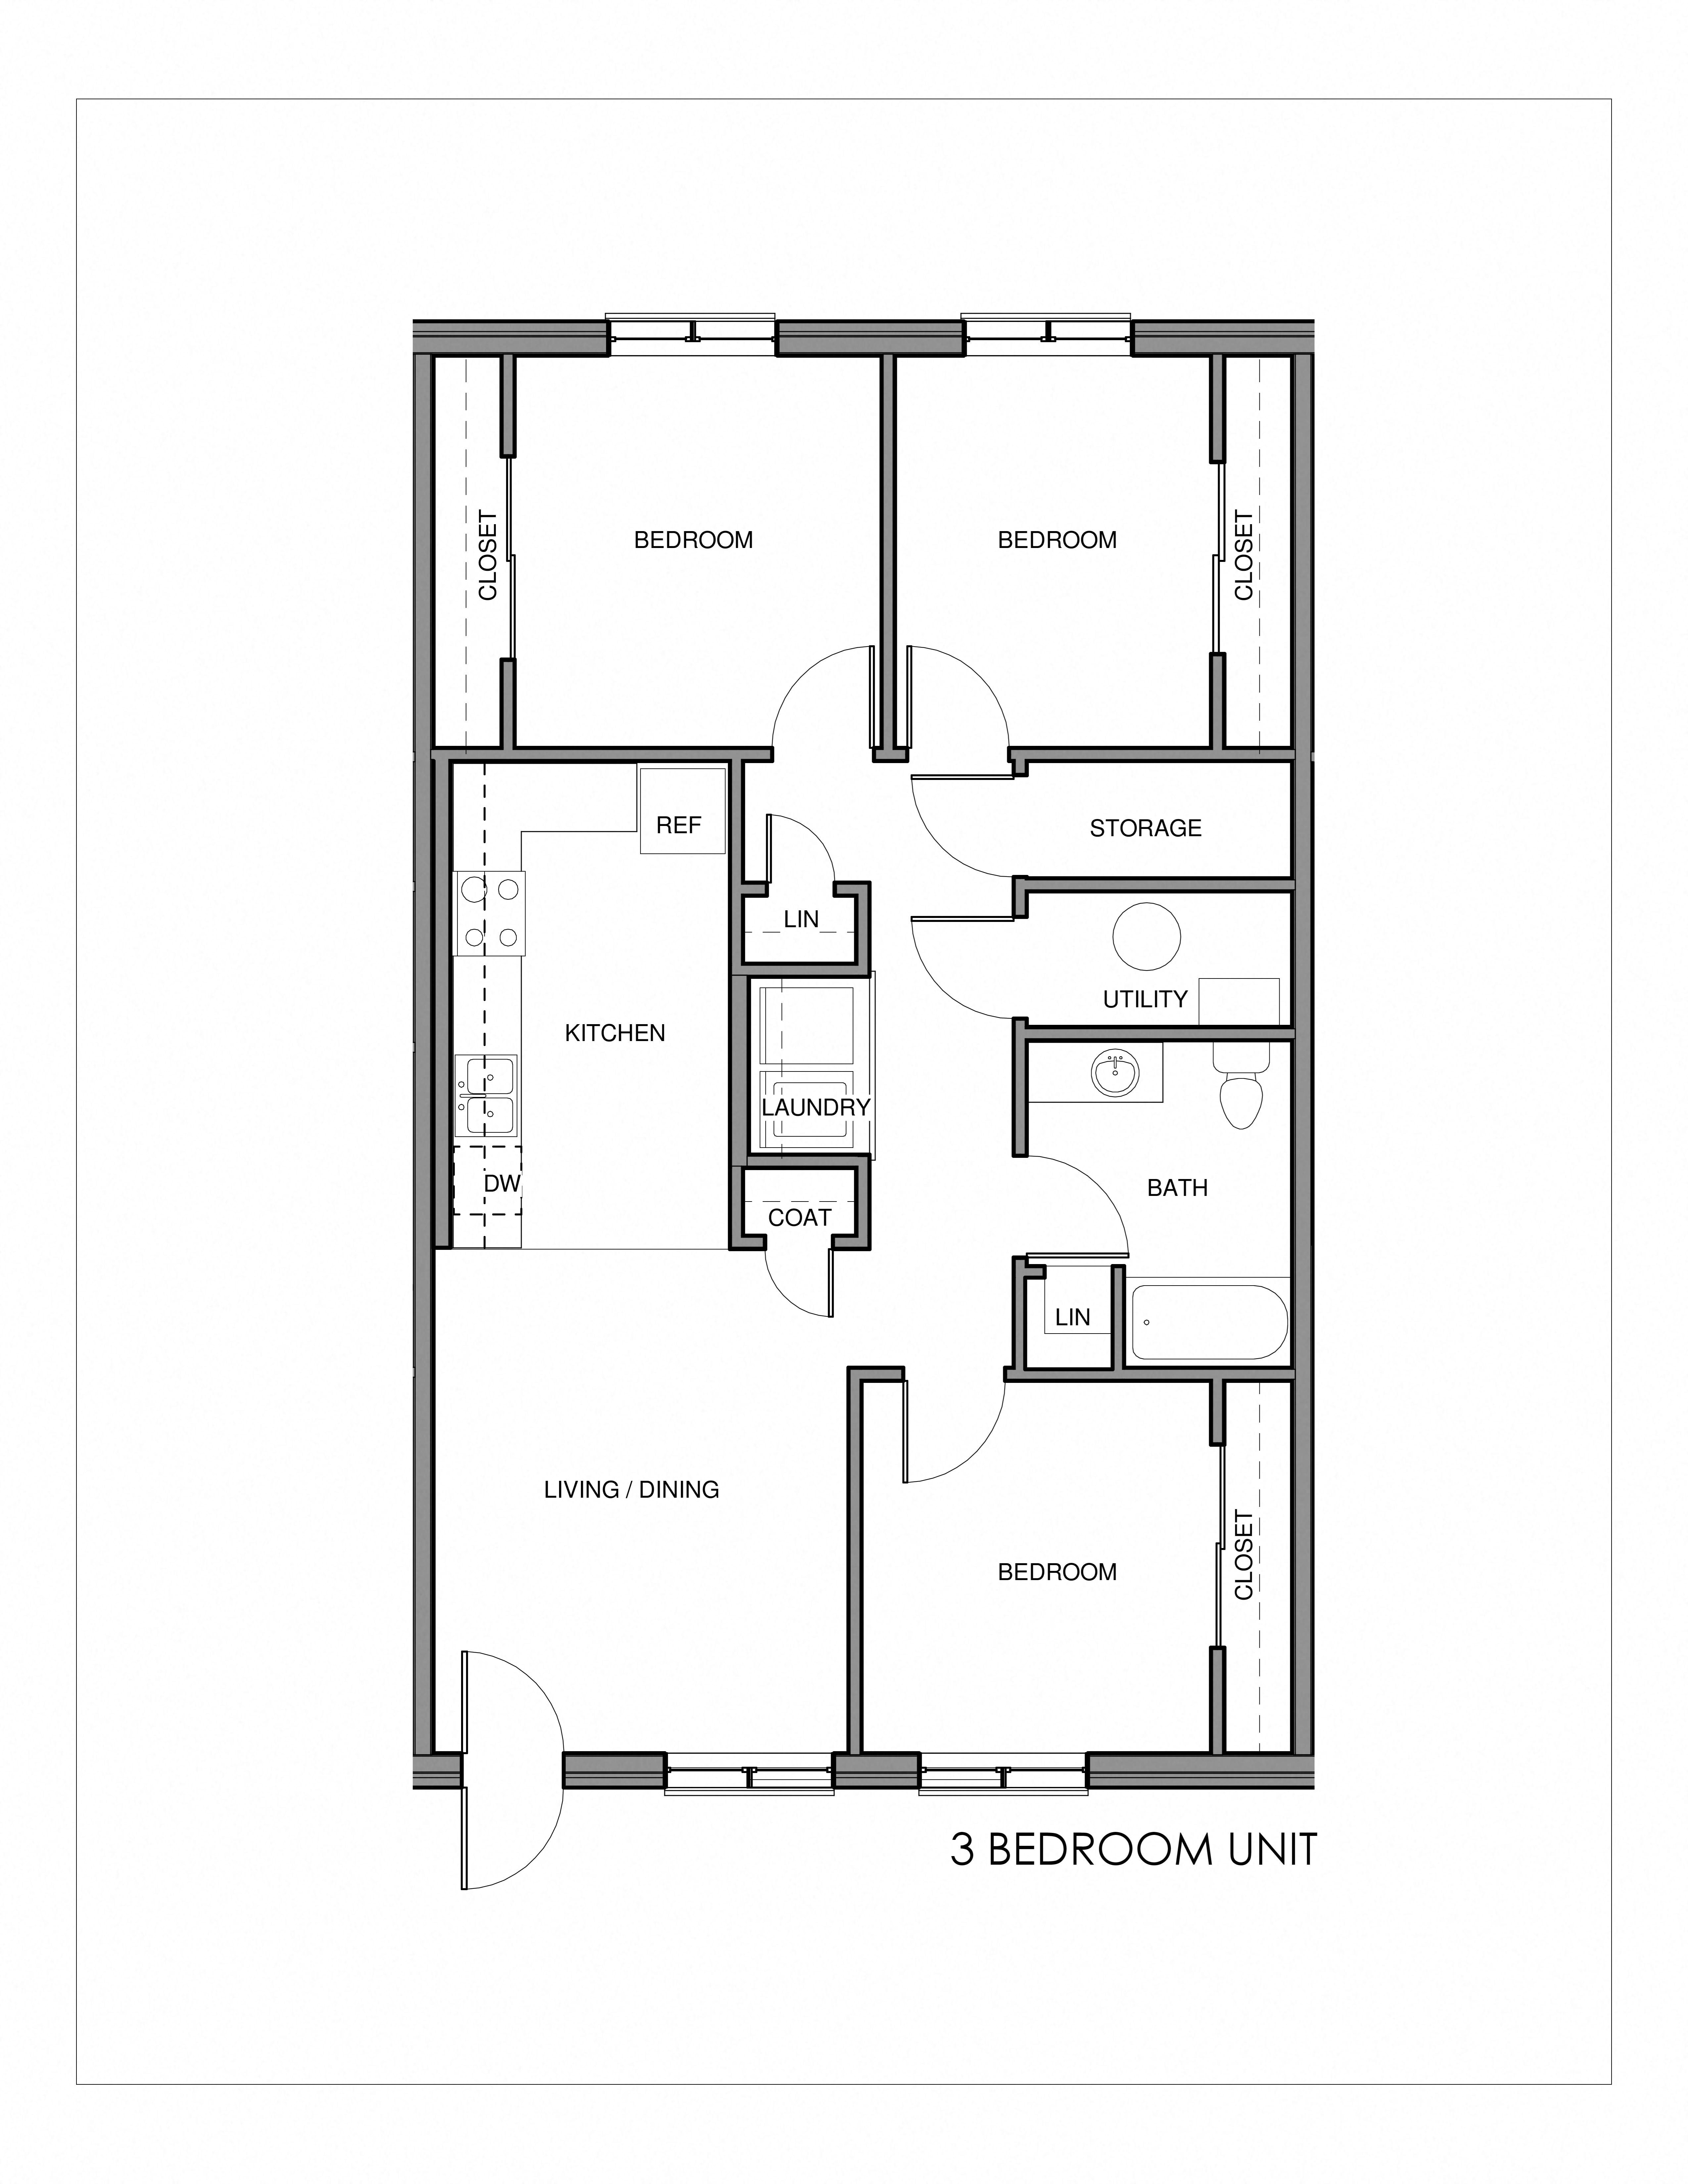 Floor Plans Of Southern Pointe Apartments In Spencer Ia